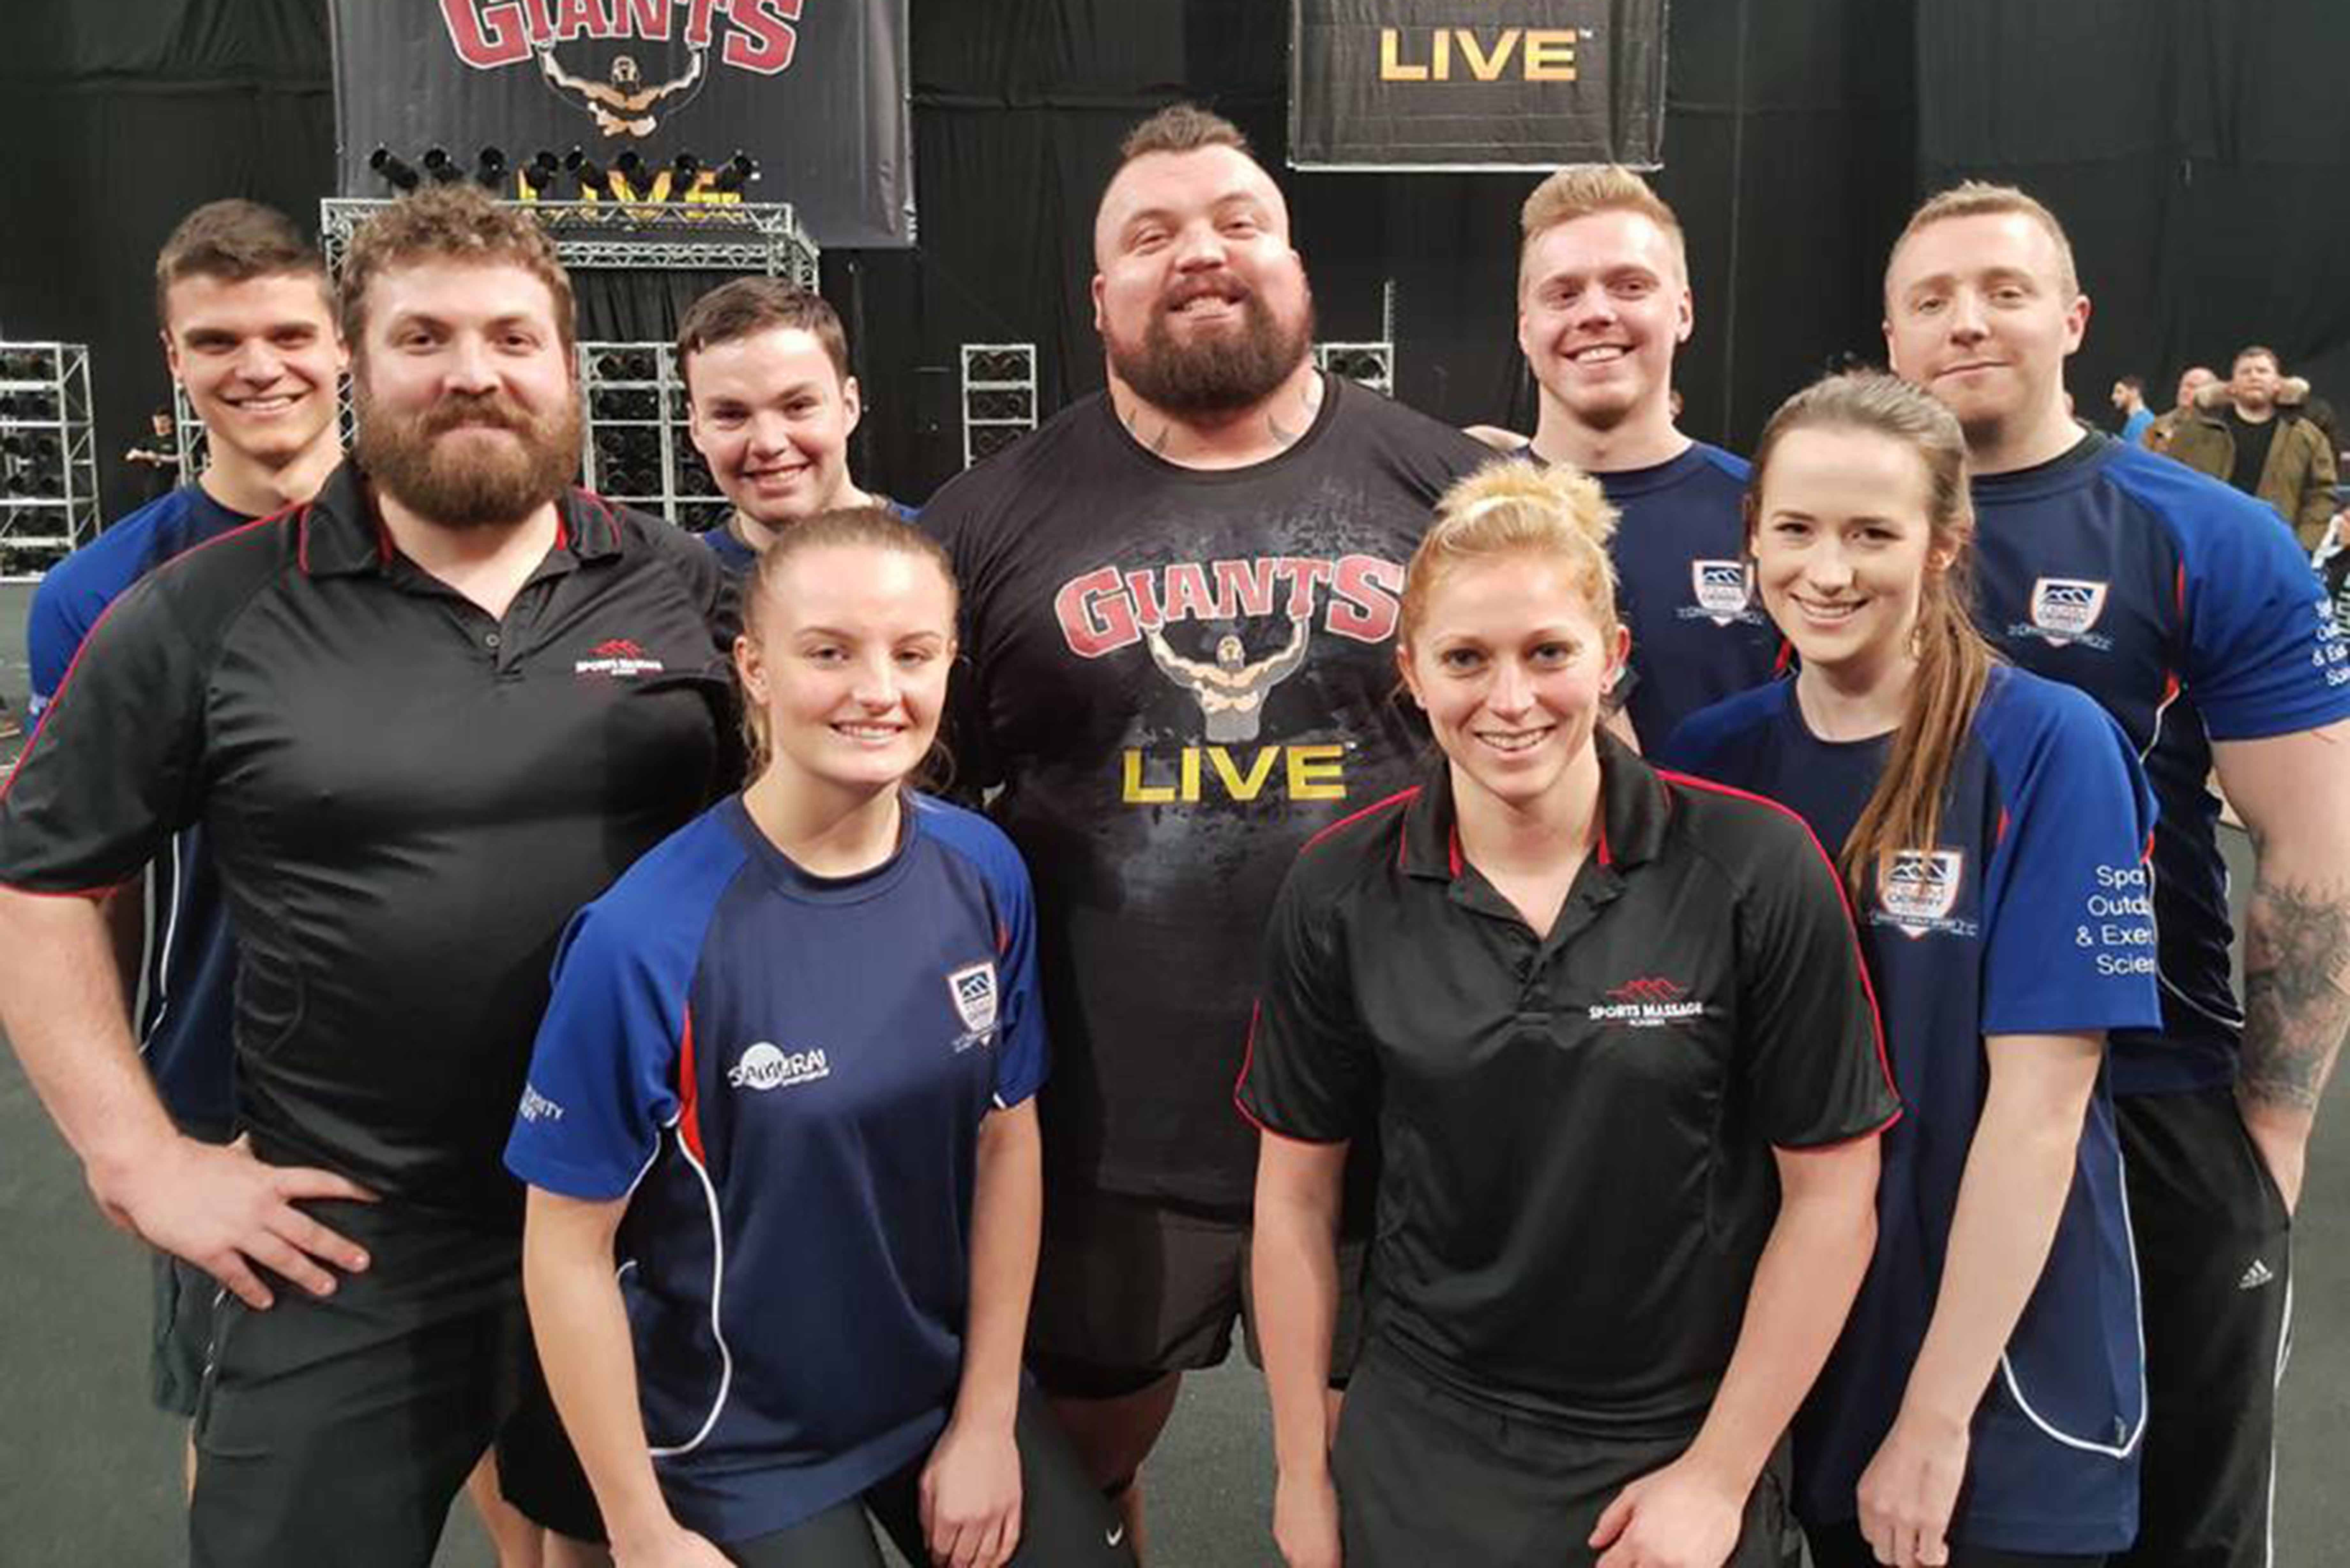 Britain's Strongest Man - Image Embed